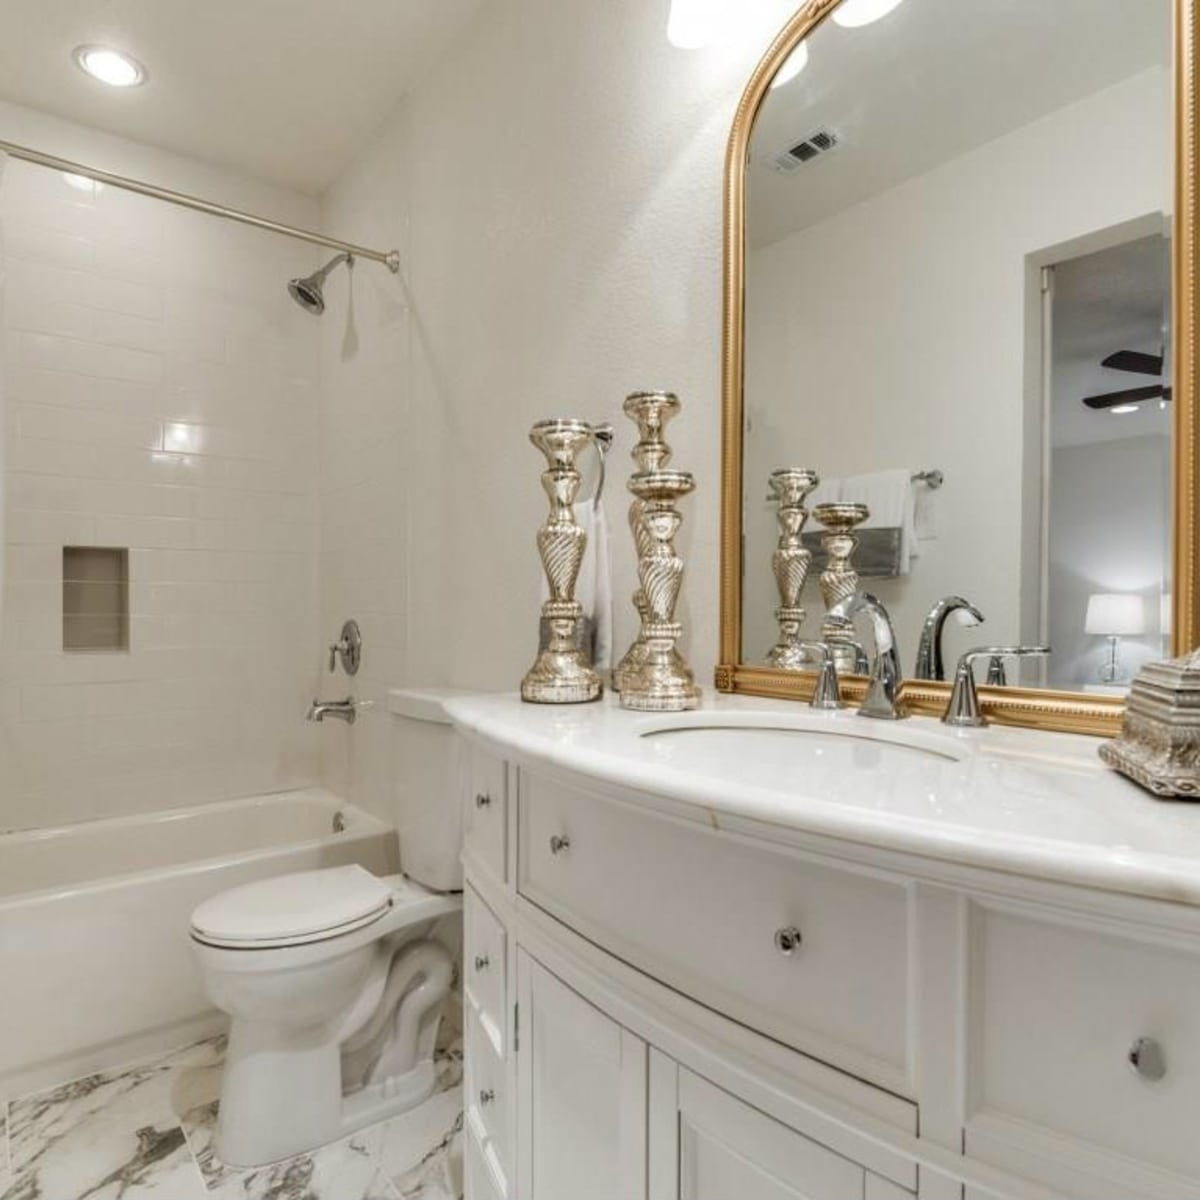 1639 Homewood Pl Dallas house for sale master bathroom